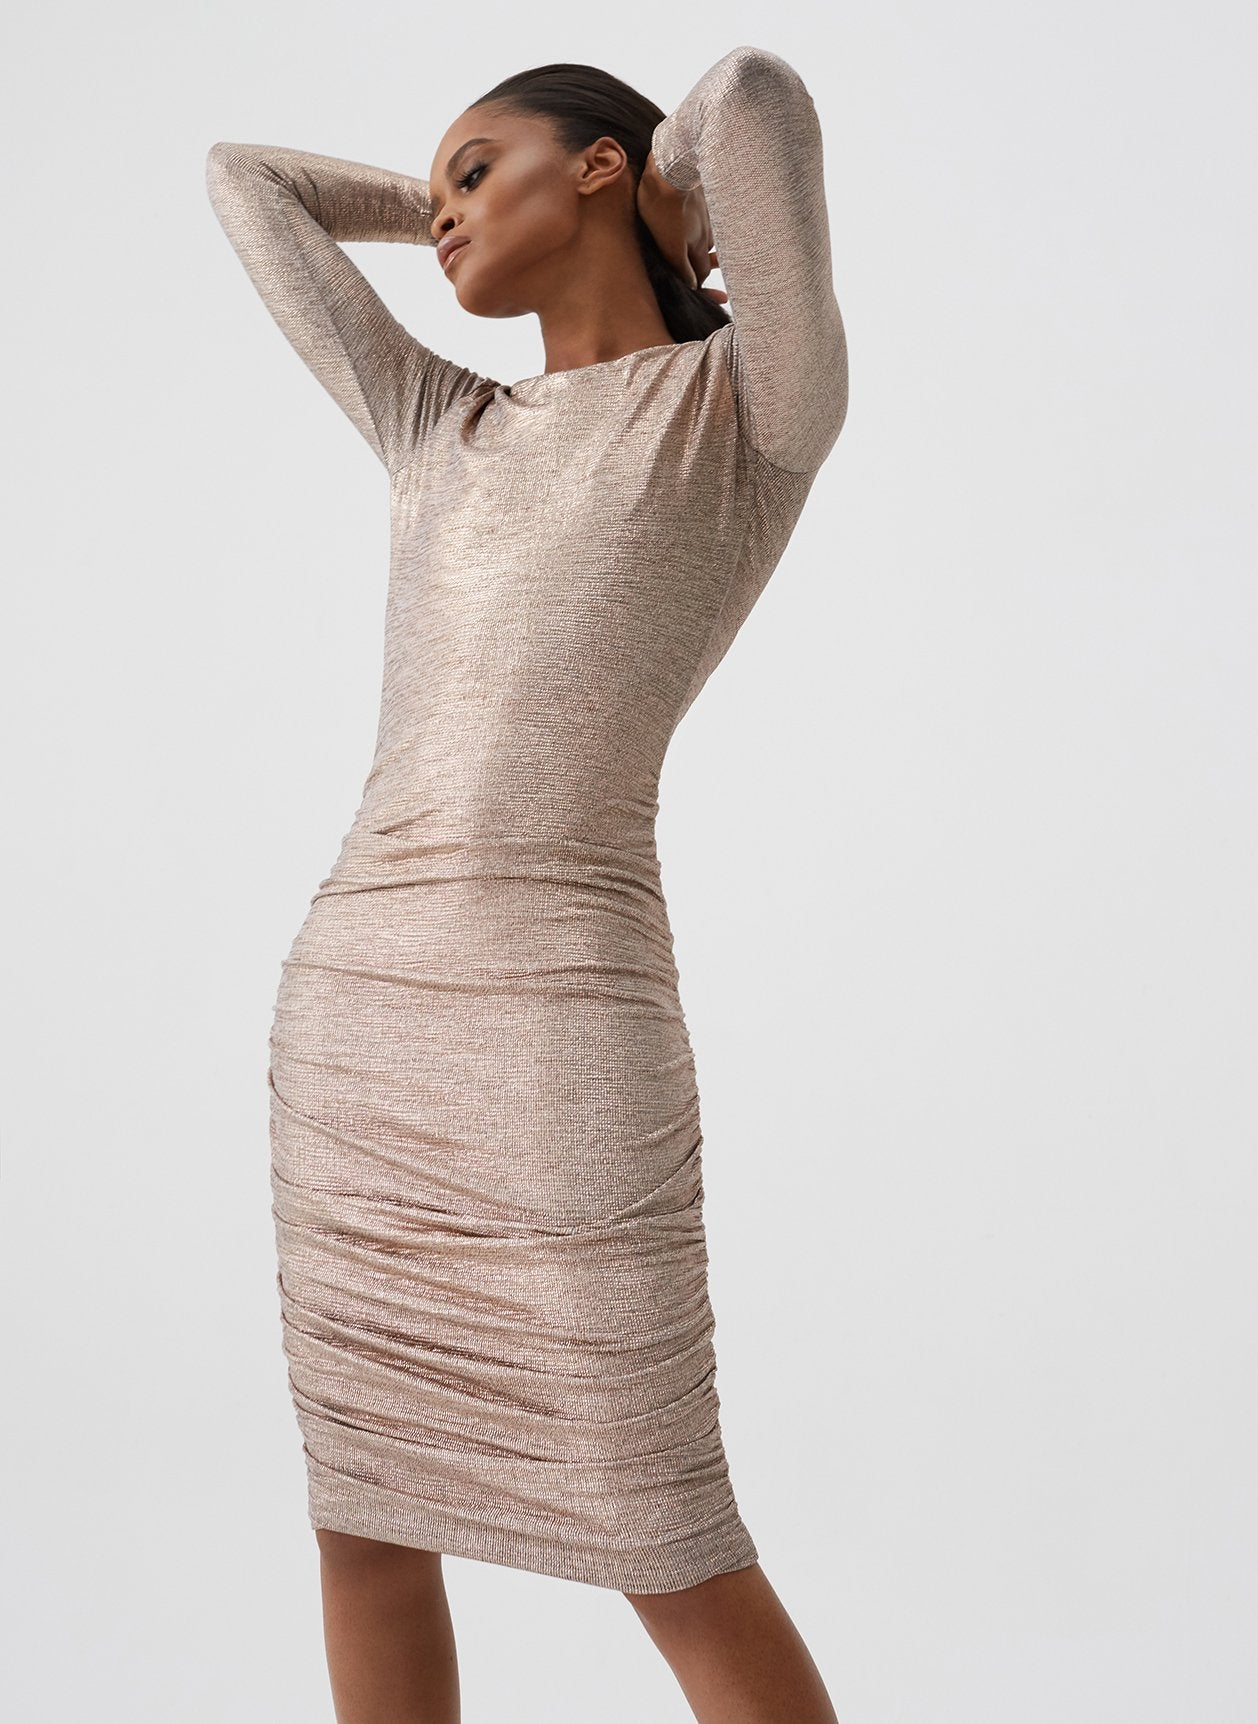 Taylor Rose Gold Gathered Midi Dress